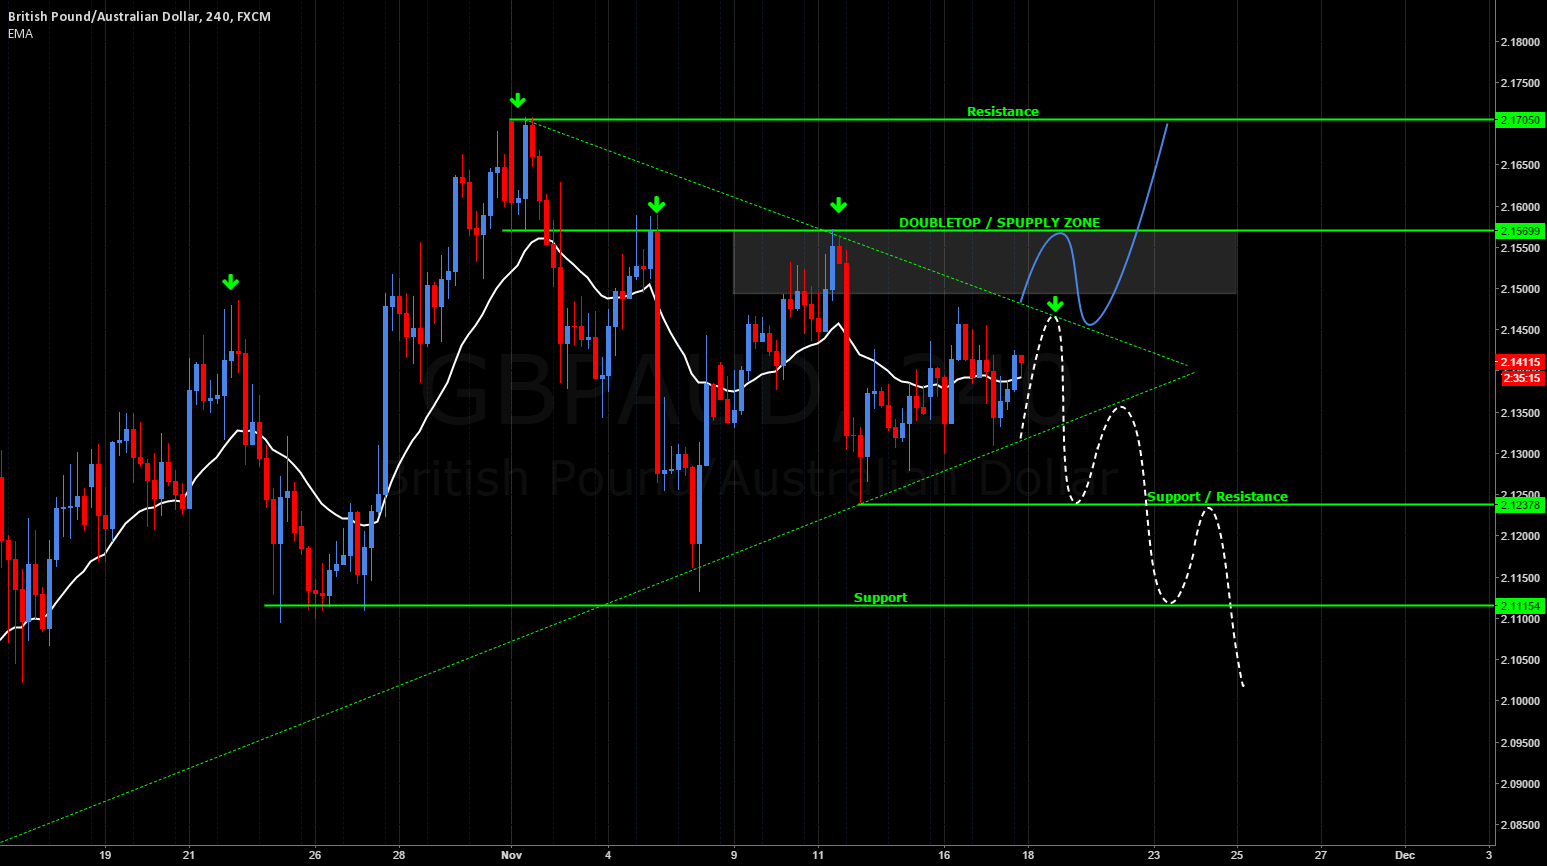 #OnMyRadar: GBPAUD | Wedge Breakout Trade